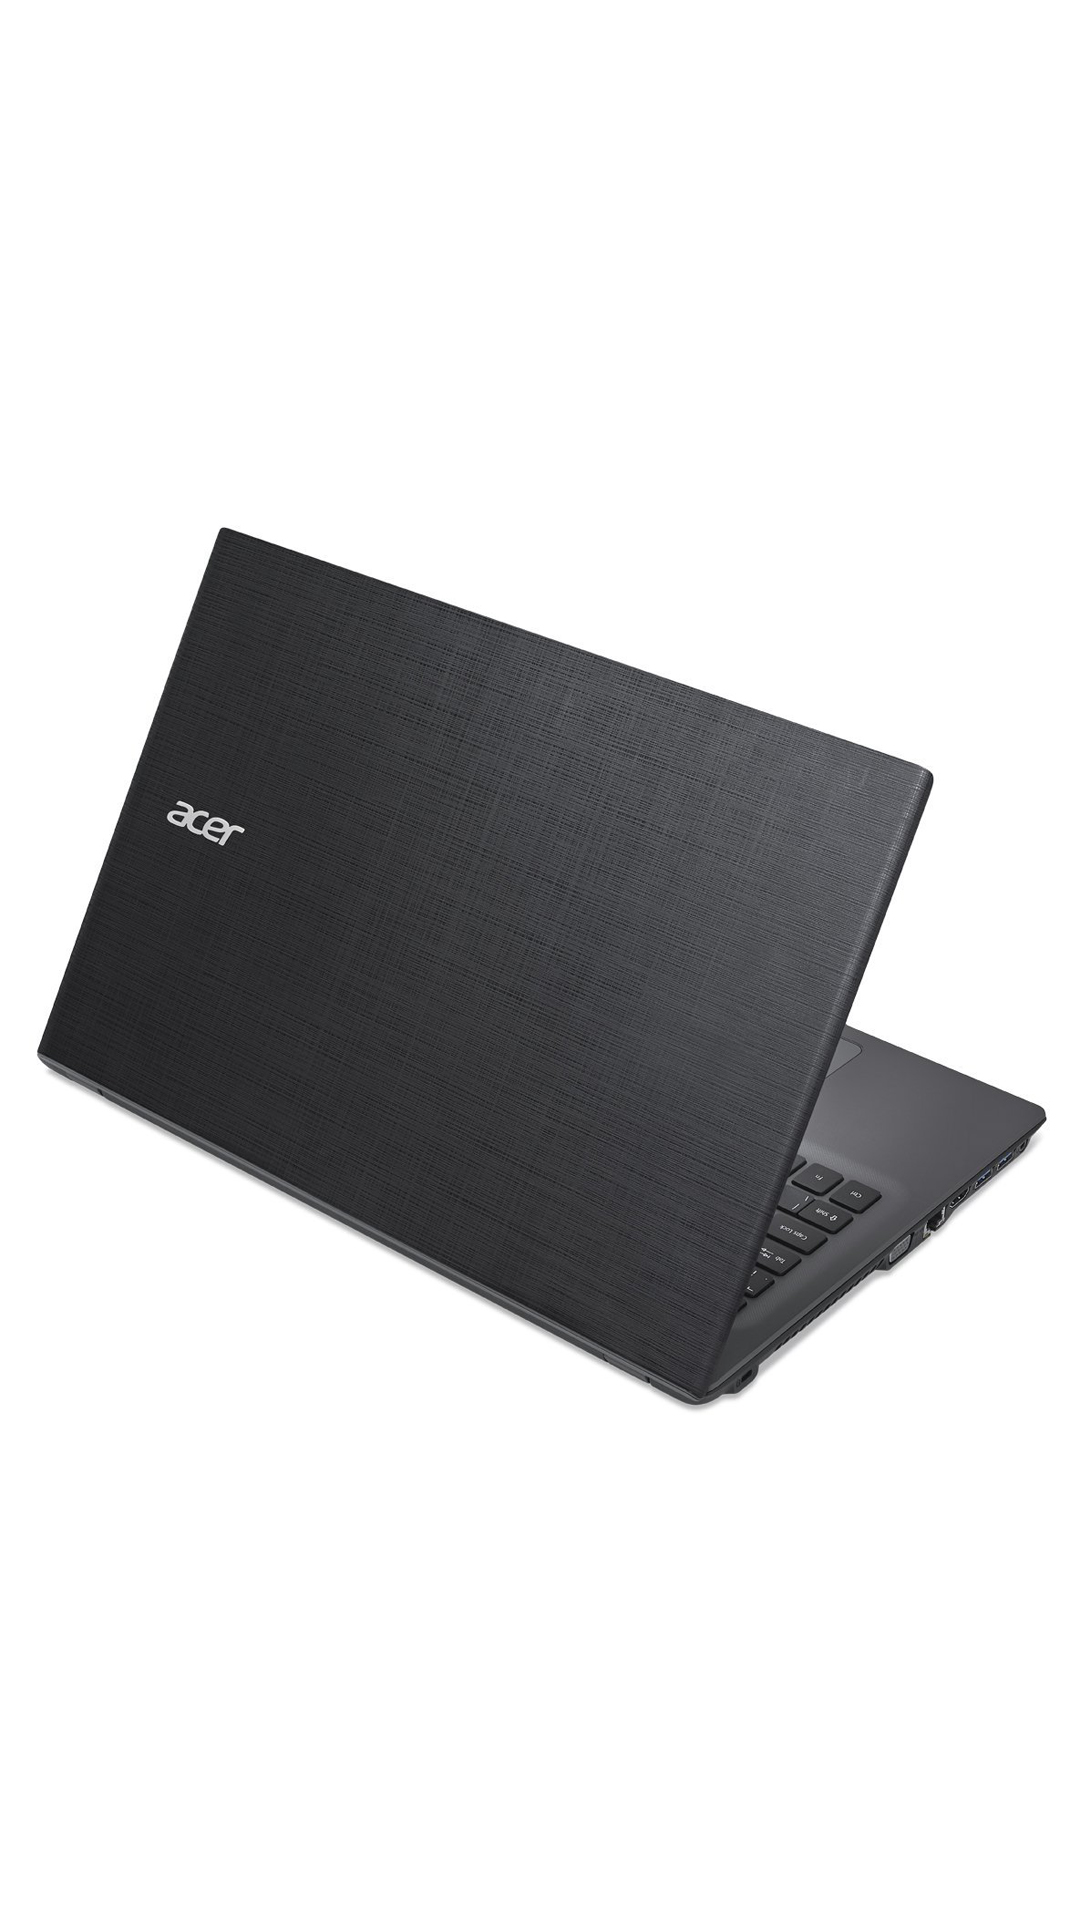 Acer Aspire E E5-573G-380S (NX.MVMSI.035) (Core i3 (5th Gen)/4 GB /1 TB/39.62 cm (15.6)/Windows 10) (Charcoal)